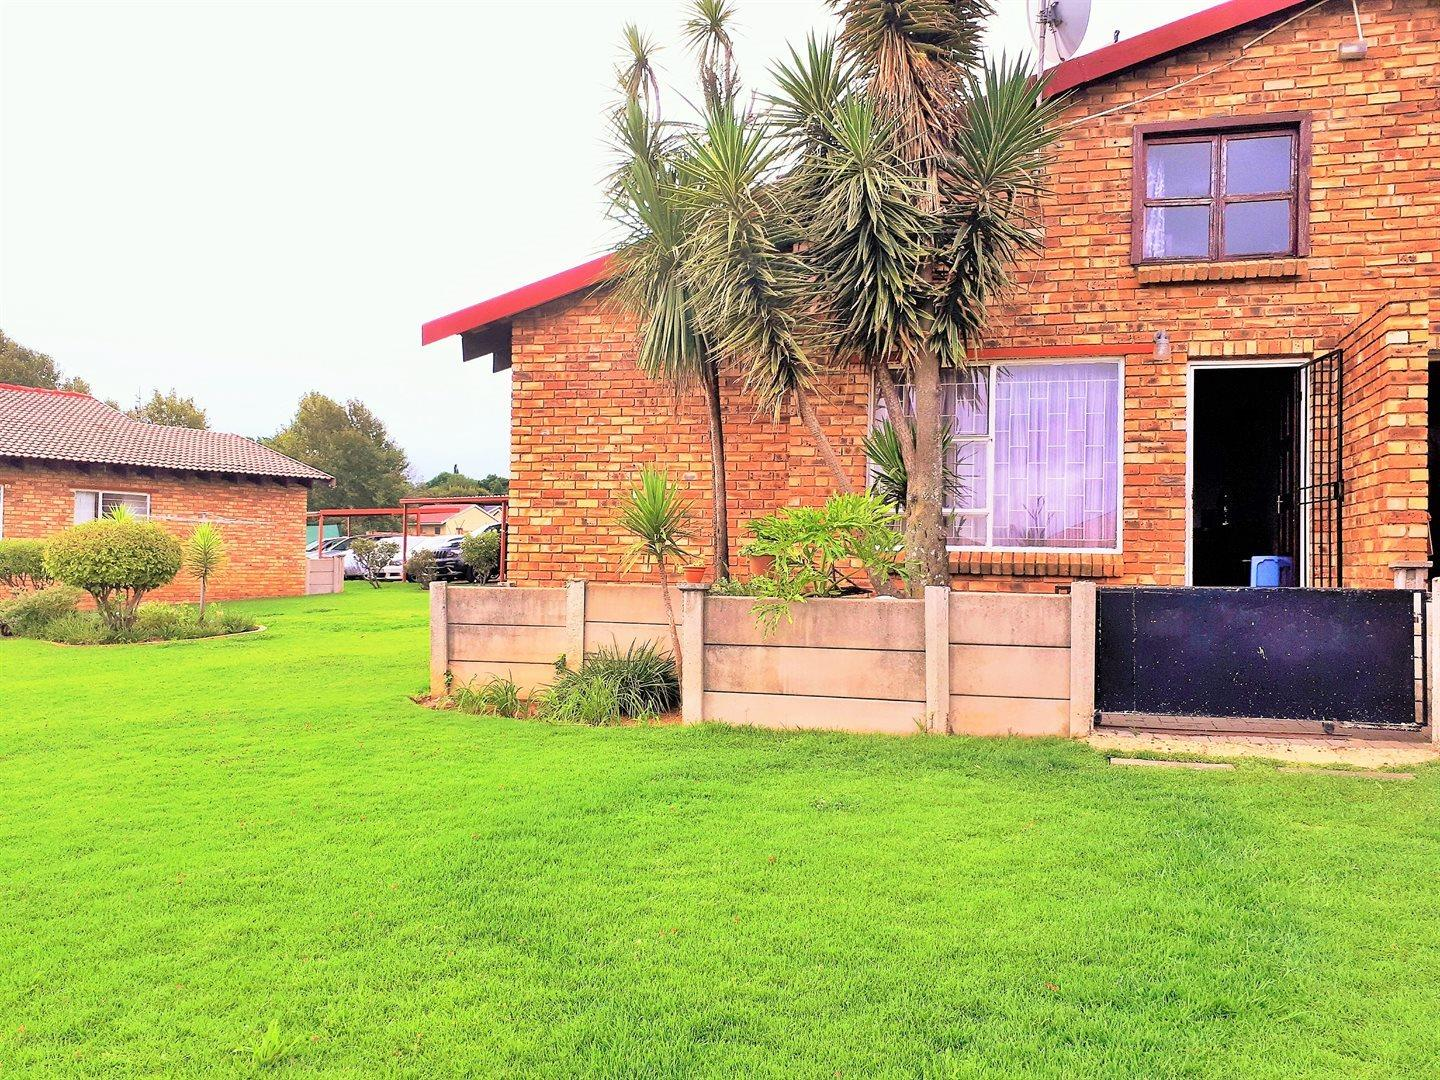 3 Bedroom Townhouse for Sale in Mindalore, Krugersdorp - Gauteng